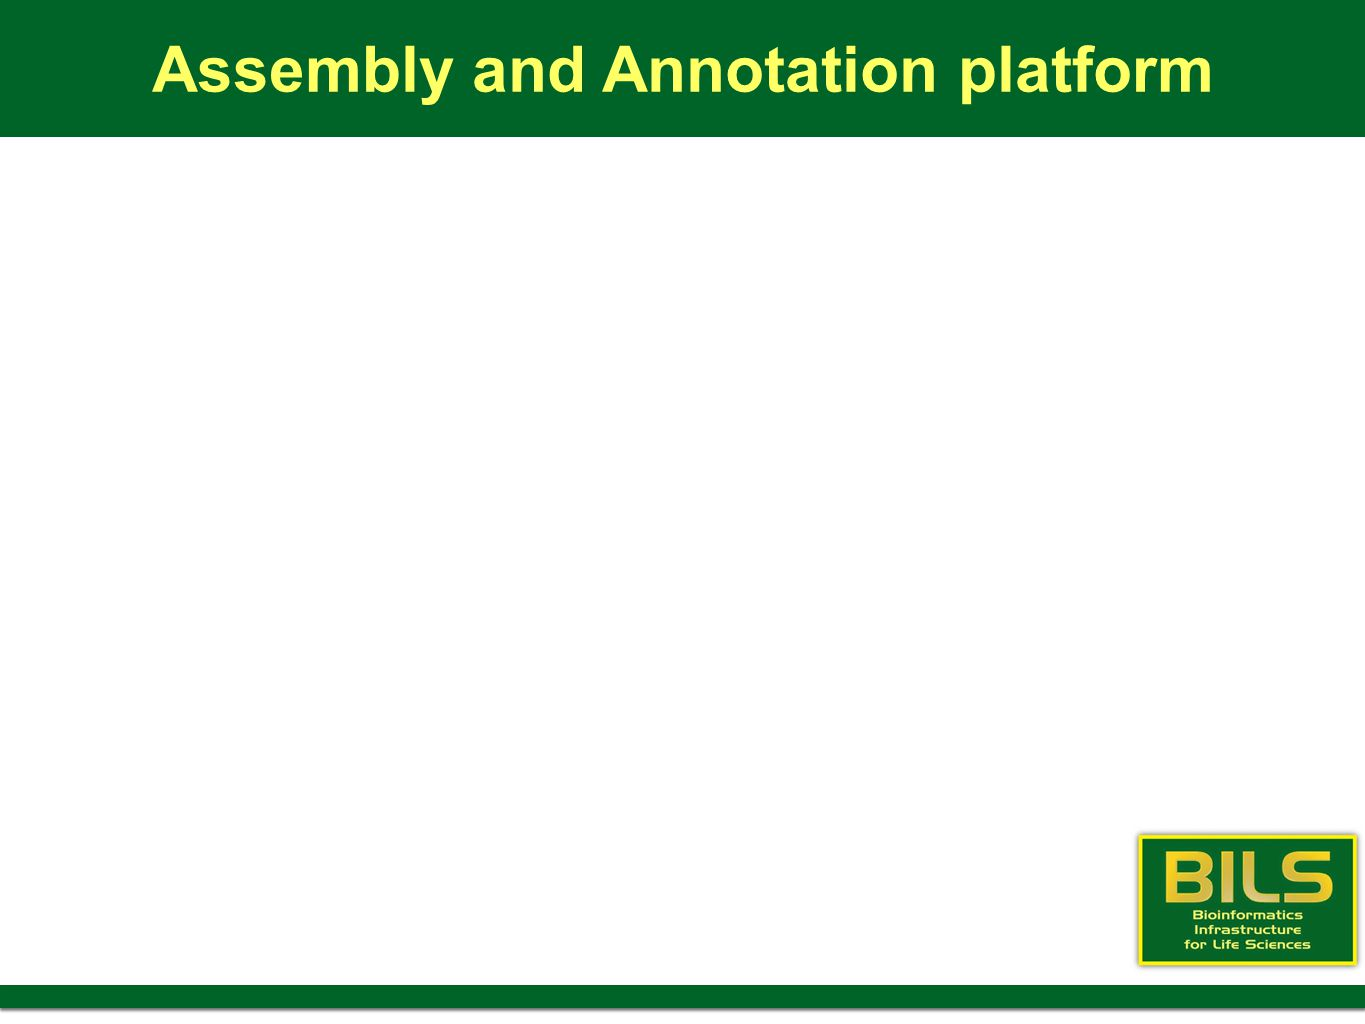 Assembly and Annotation platform